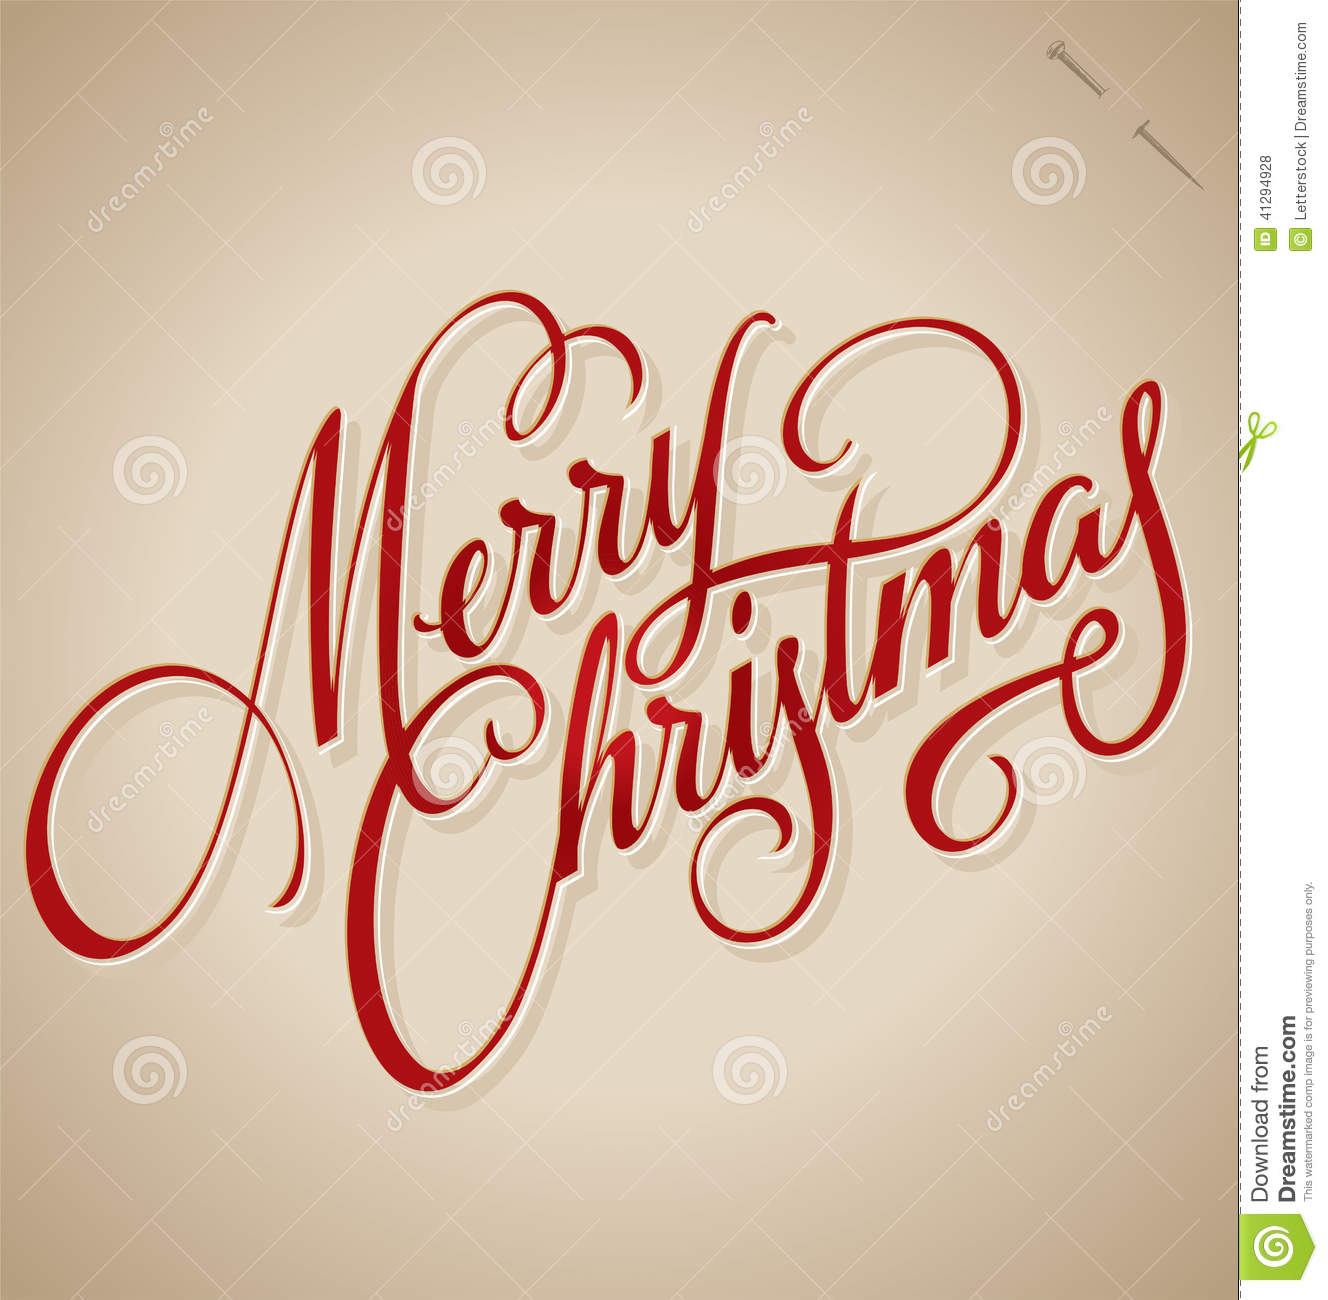 Merry Christmas Calligraphy.Merry Christmas Hand Lettering Vector Stock Vector